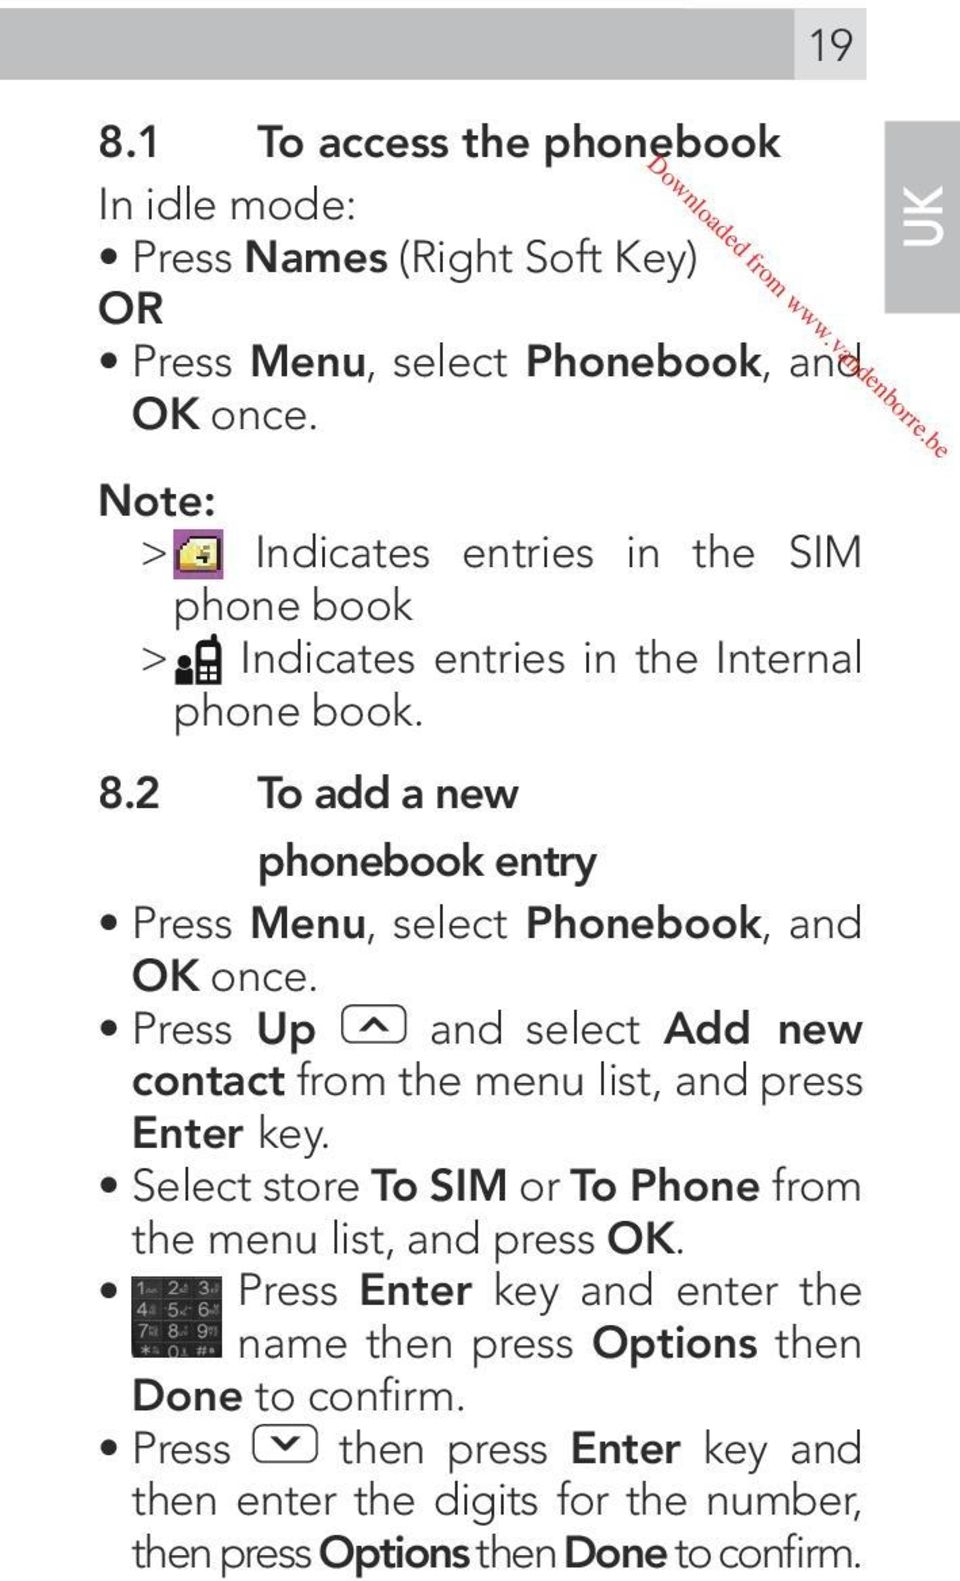 2 To add a new phonebook entry Press Menu, select Phonebook, and OK once. Press Up and select Add new contact from the menu list, and press Enter key.